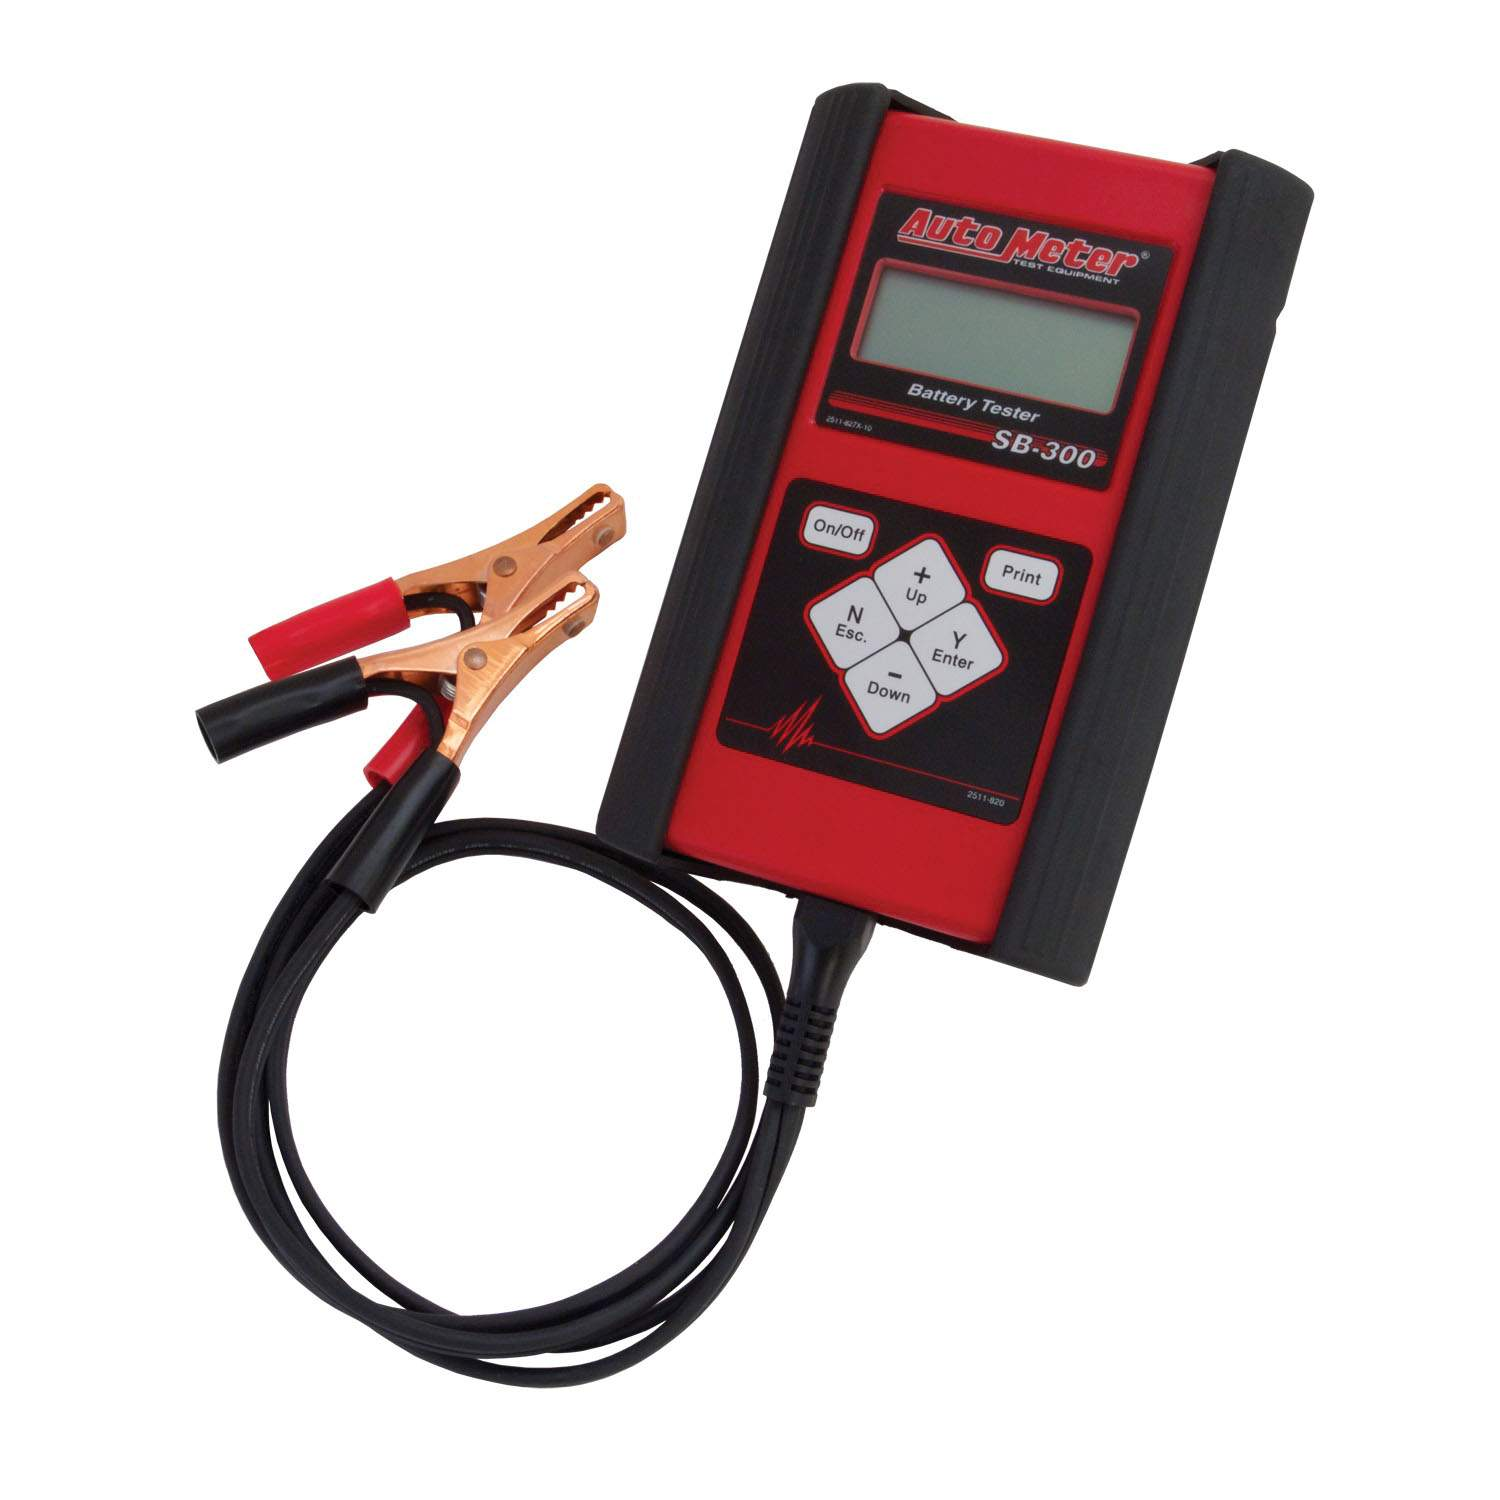 40 amp Battery & Charging System Analyzer AUTSB-300 | Tool Discounter